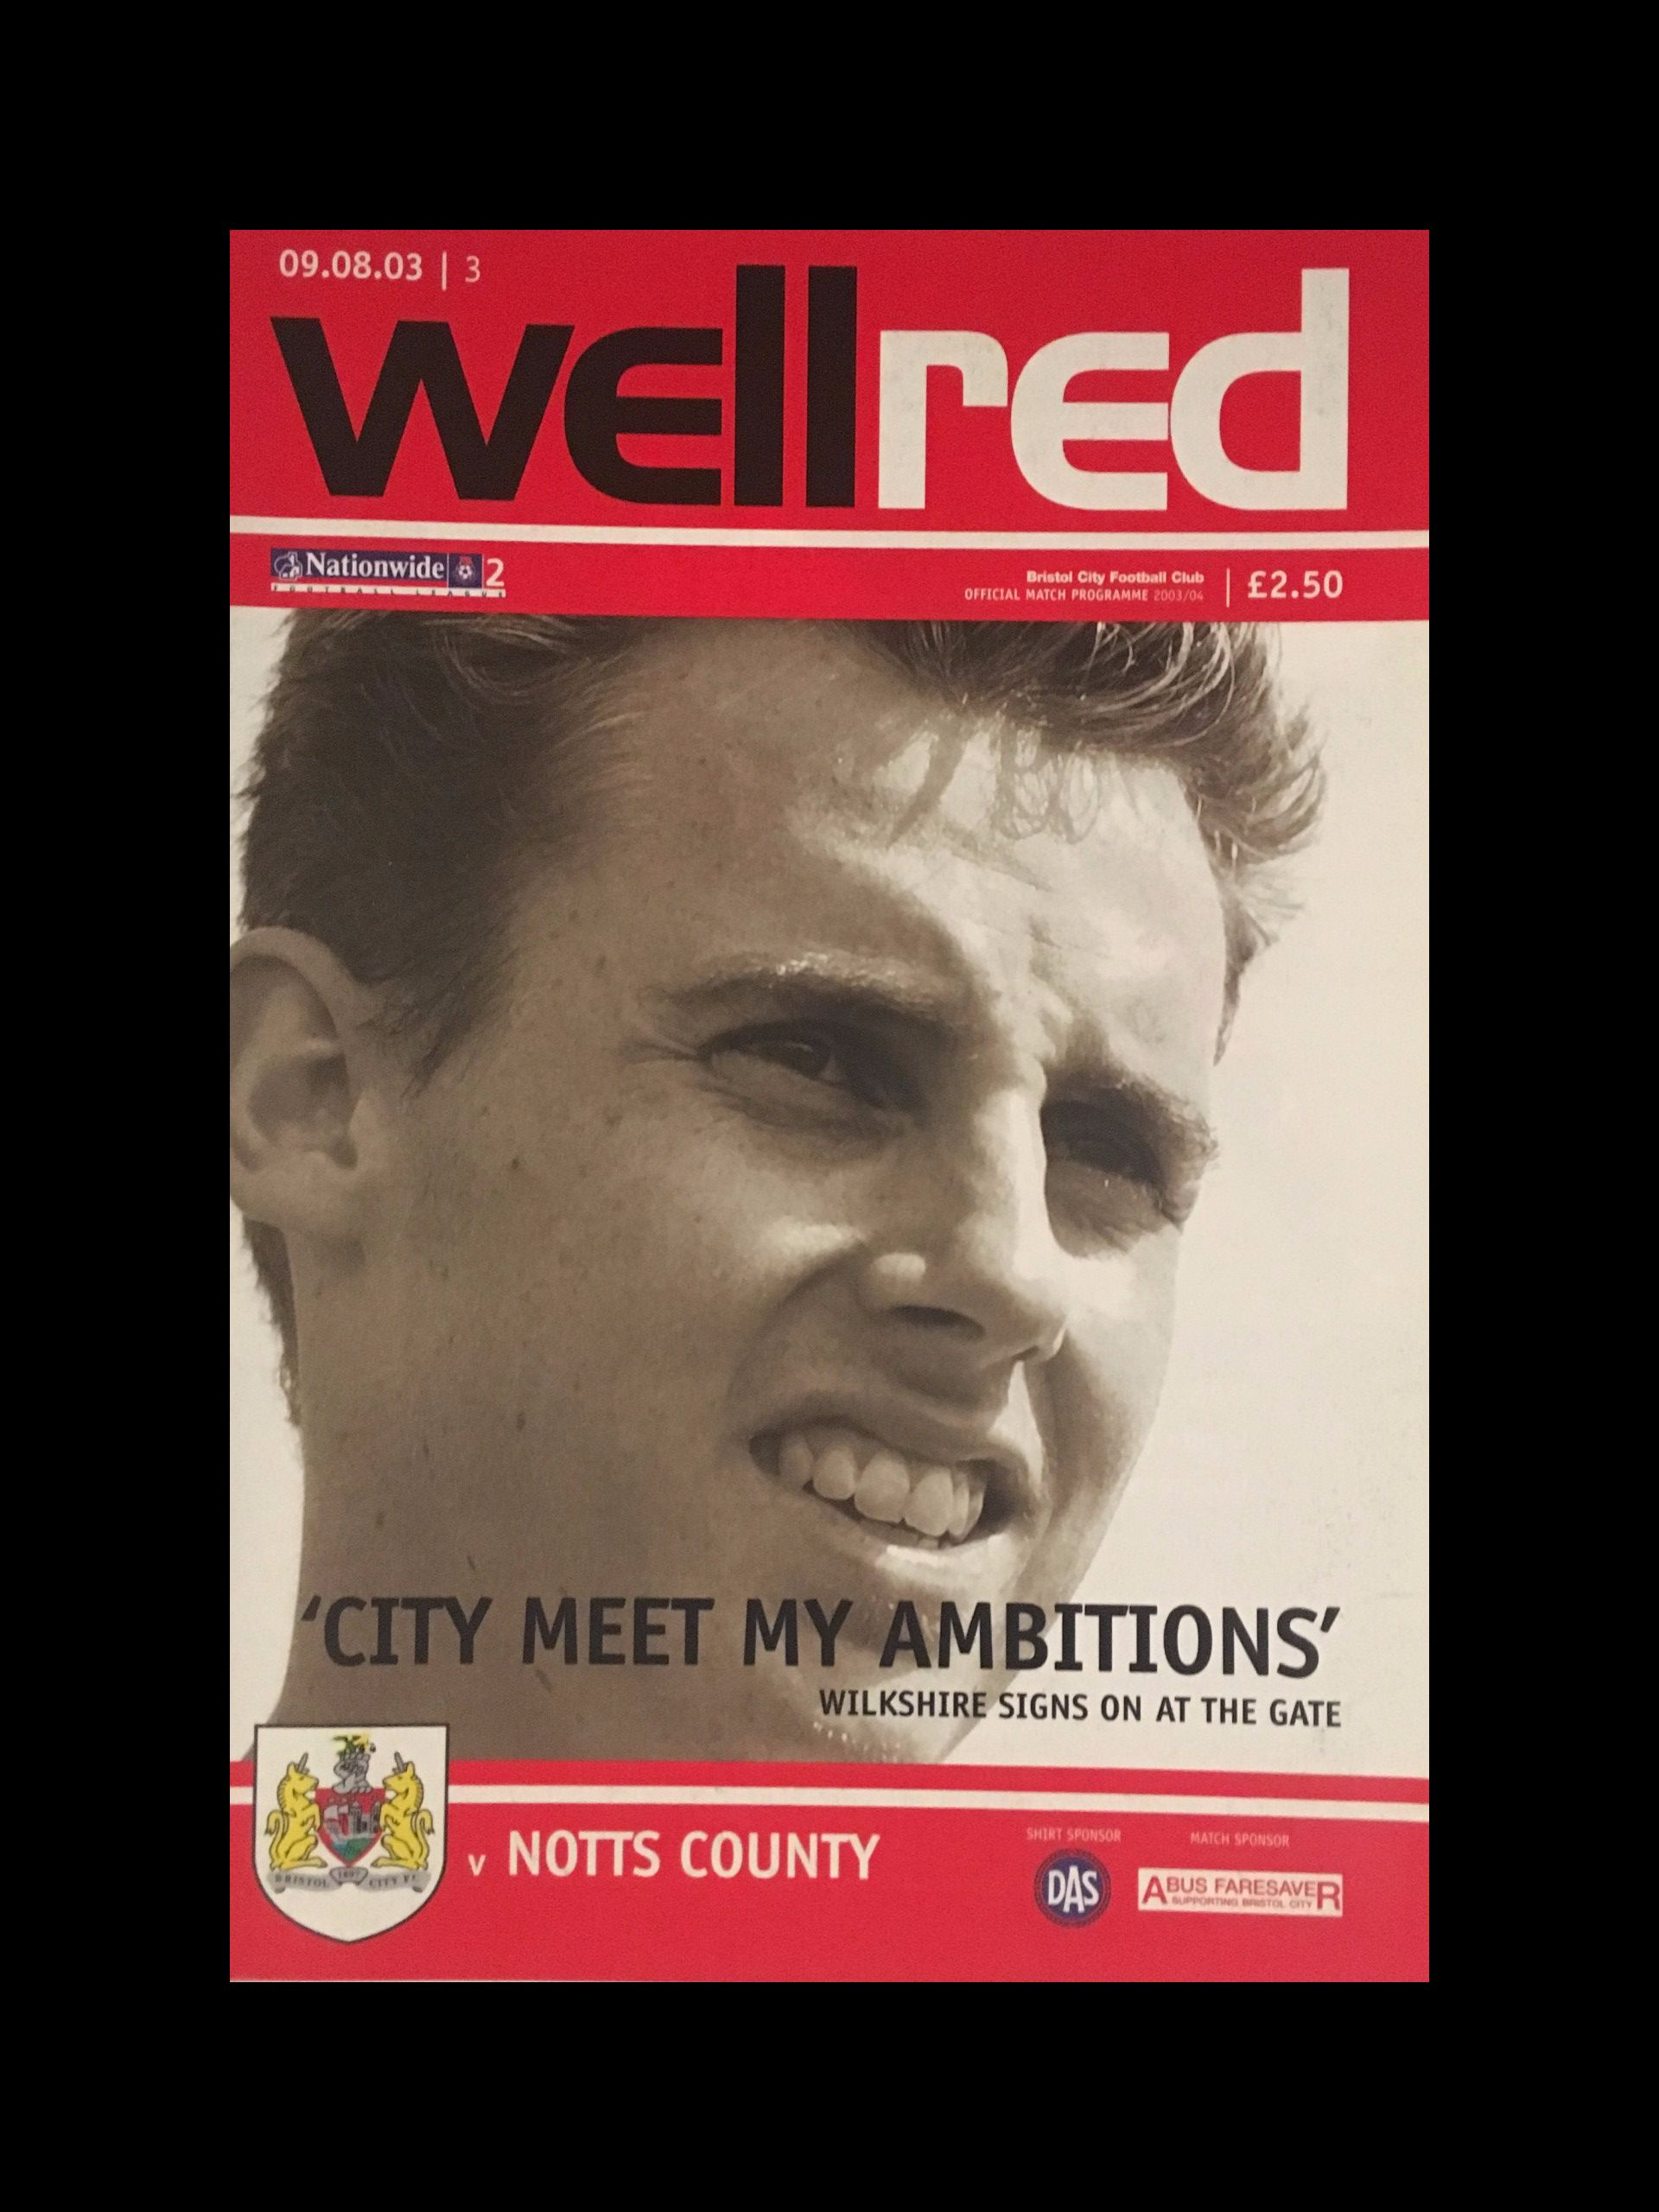 Bristol City v Notts County 09-08-2003 Programme